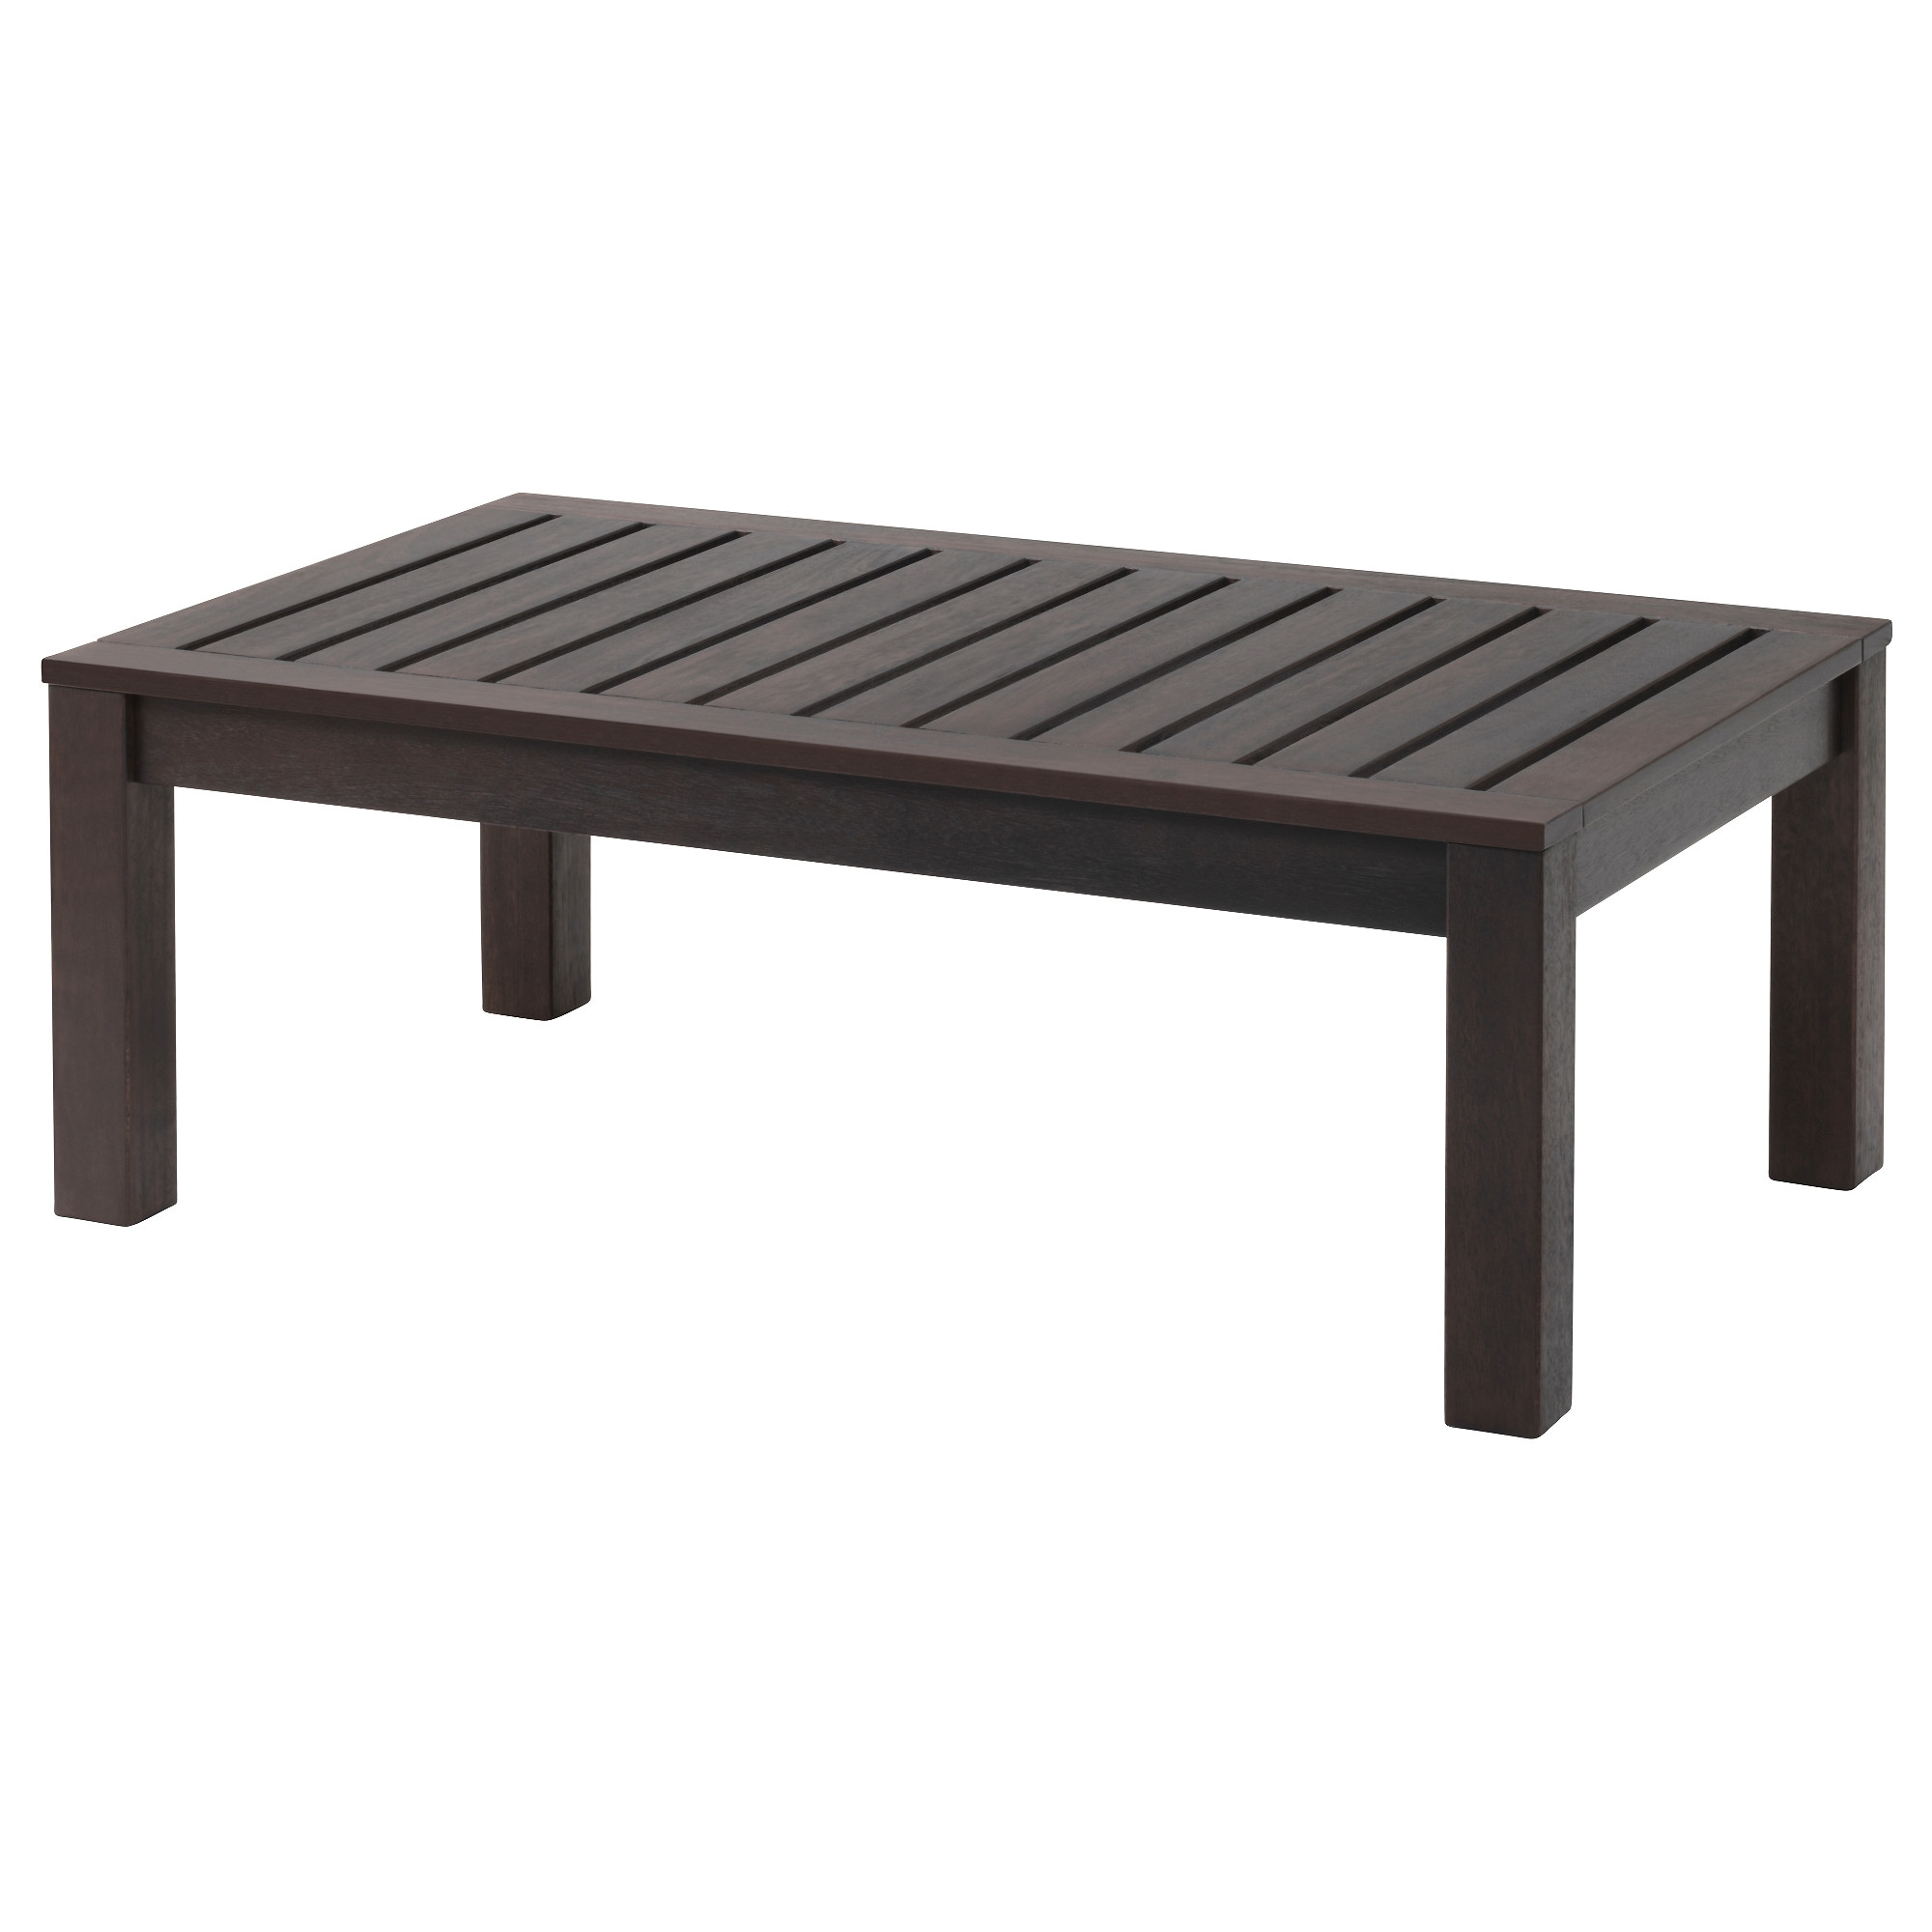 Kloven Coffee Table Outdoor Black Brown Brown Stained X26 113x66 Cm